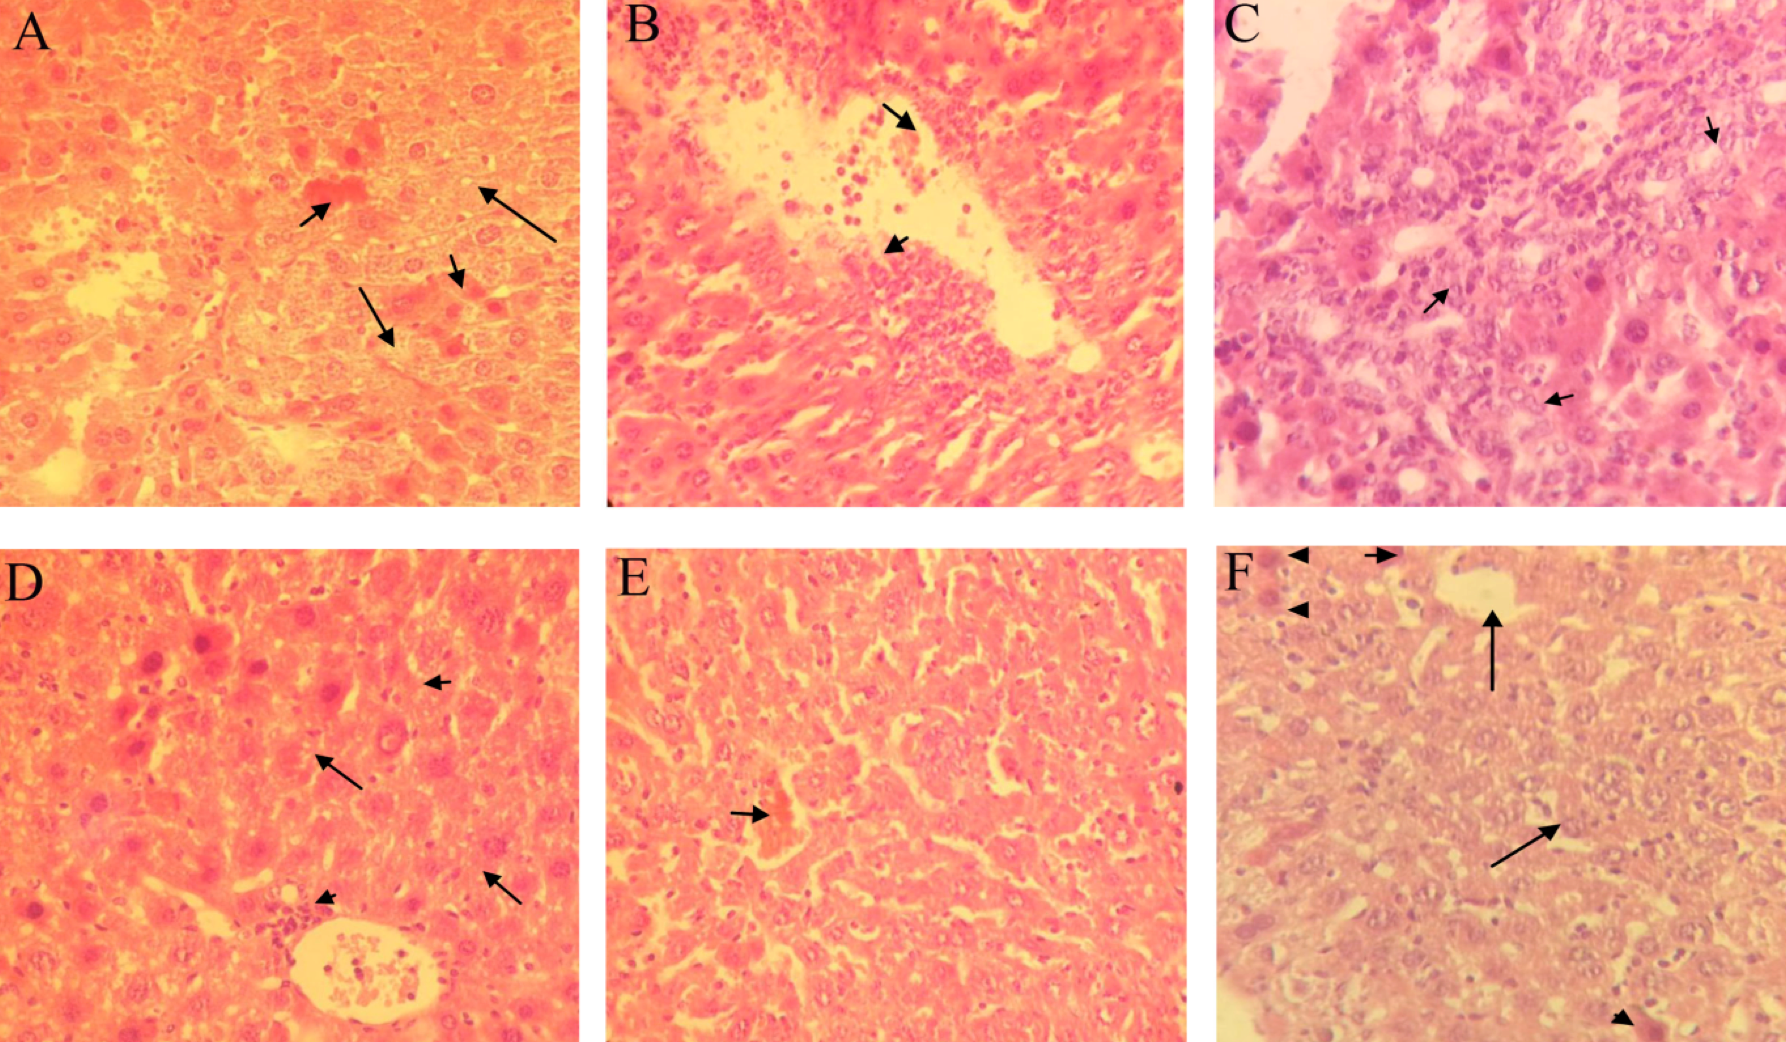 Figure 5 Representative photomicrographs of hematoxylin- and eosin-stained sections of mouse livers